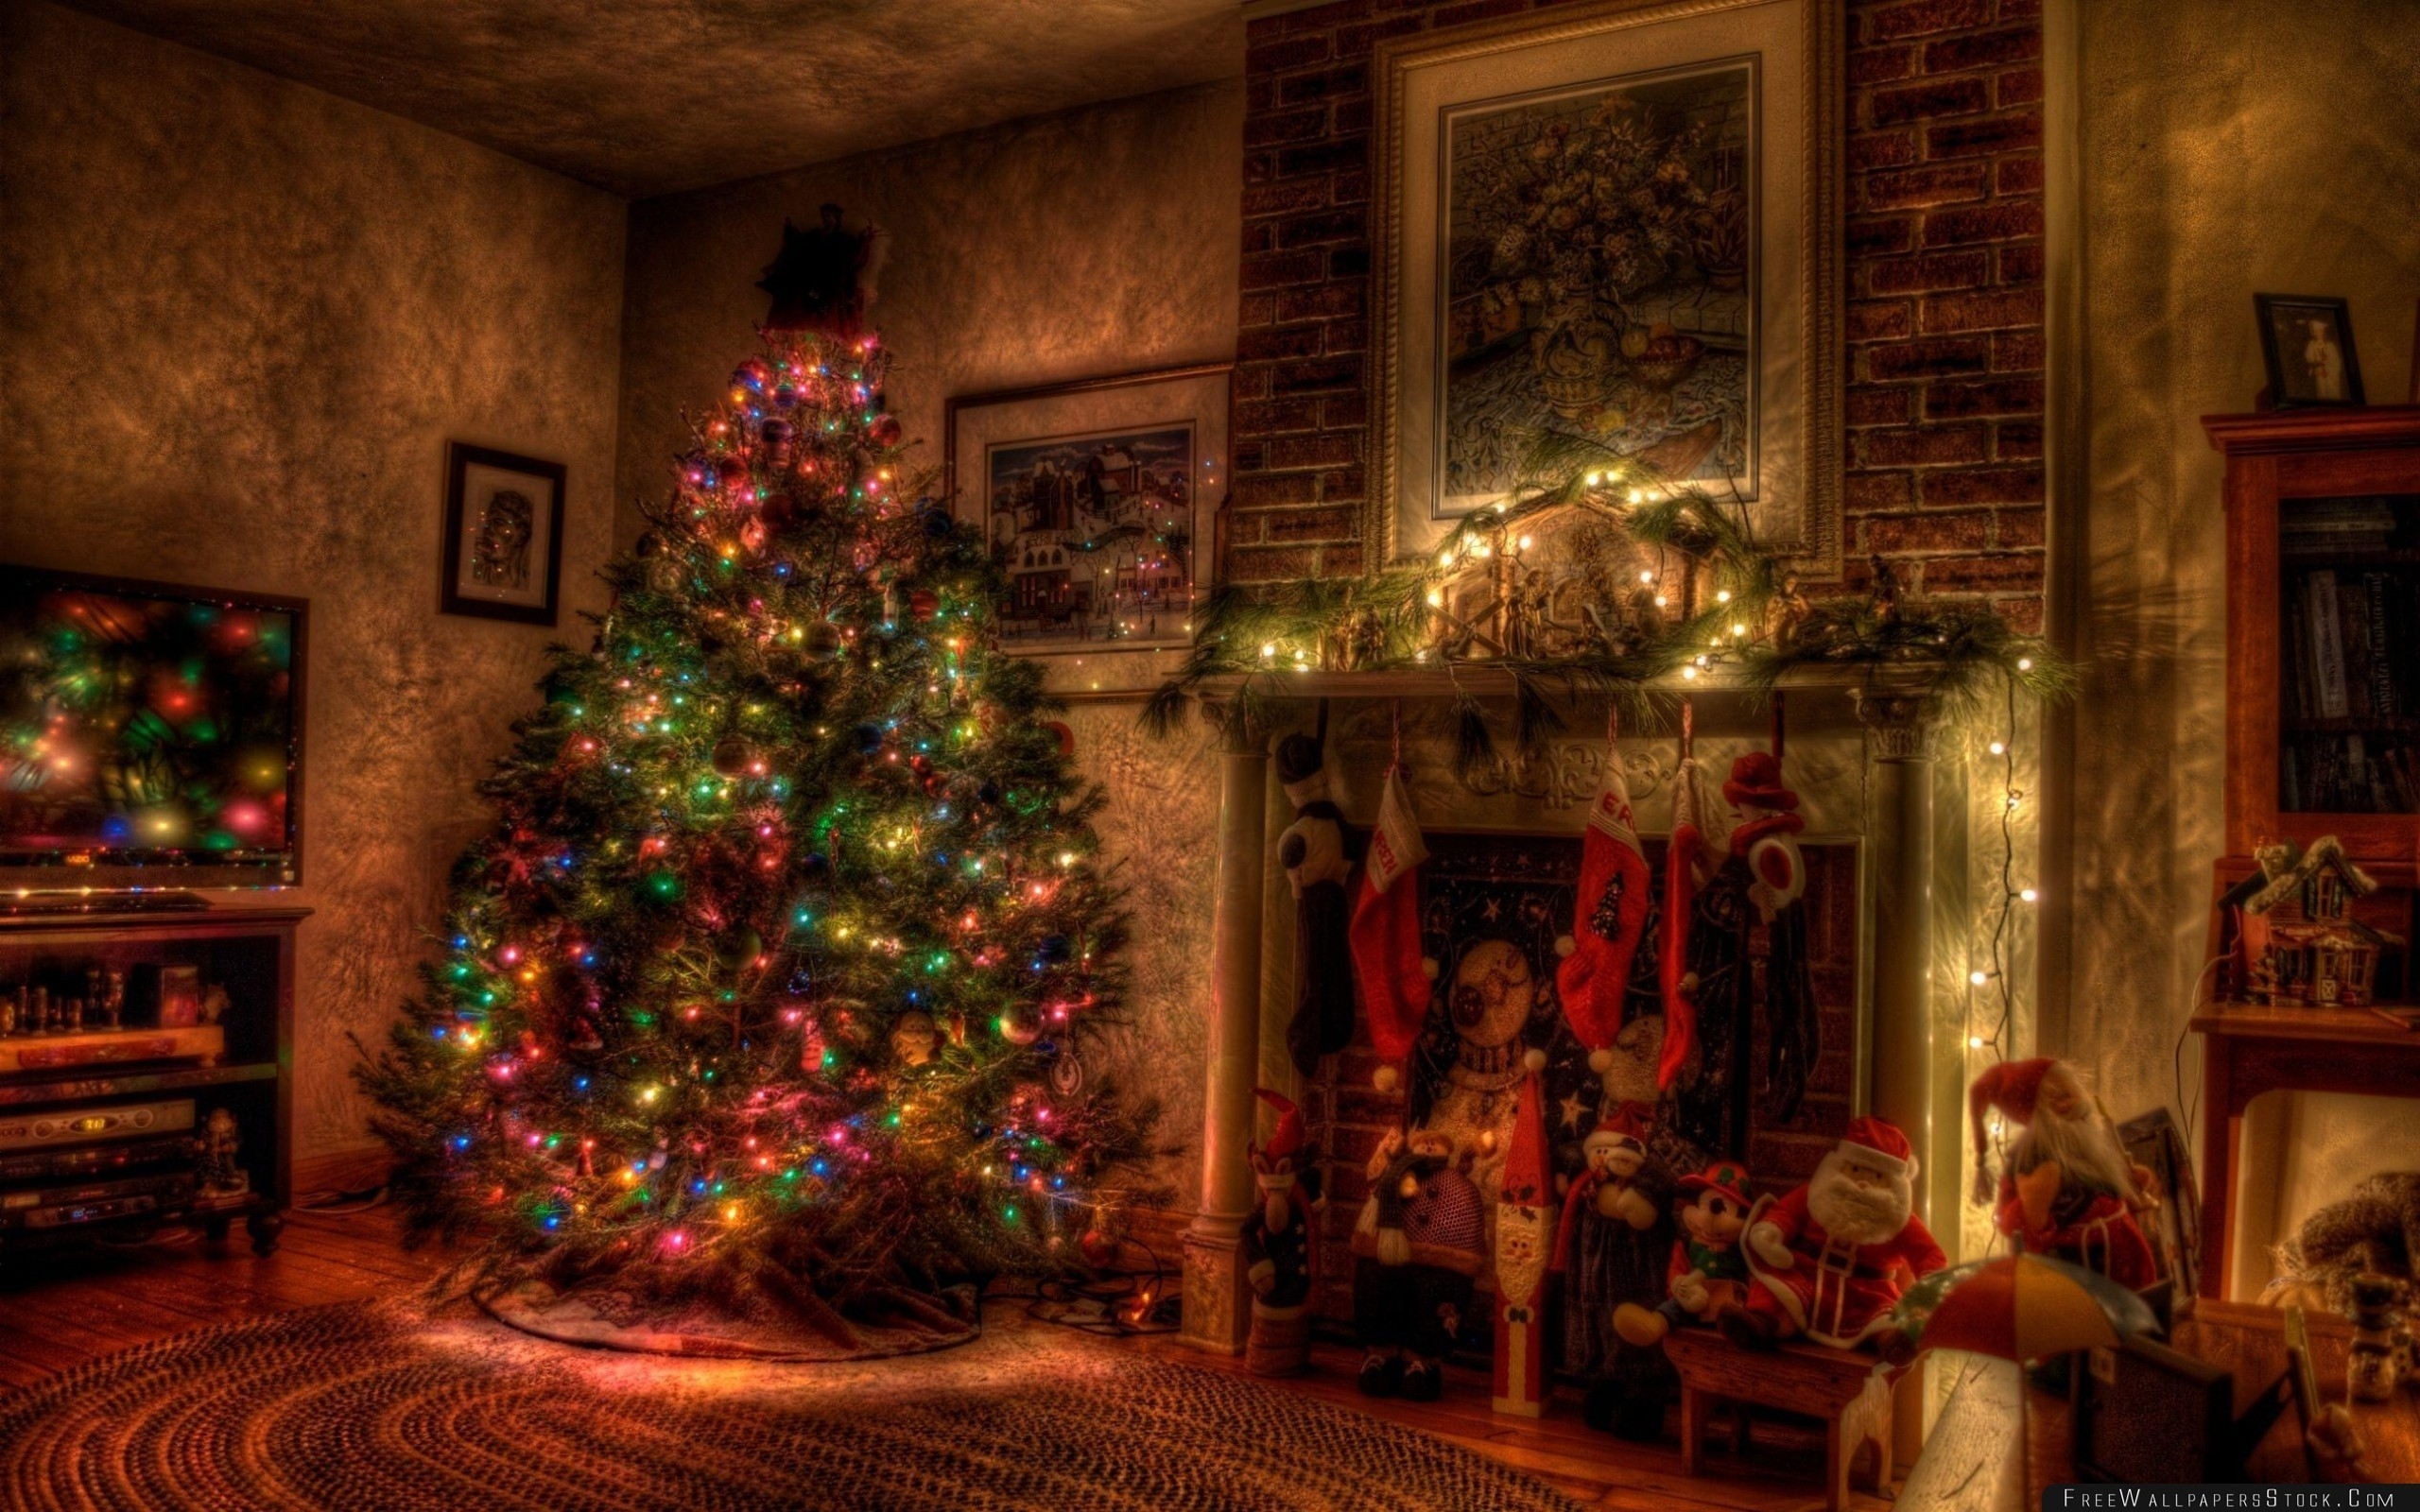 Res: 2560x1600, Tree Christmas Holiday Garland Fireplace Toys Stockings Wallpaper